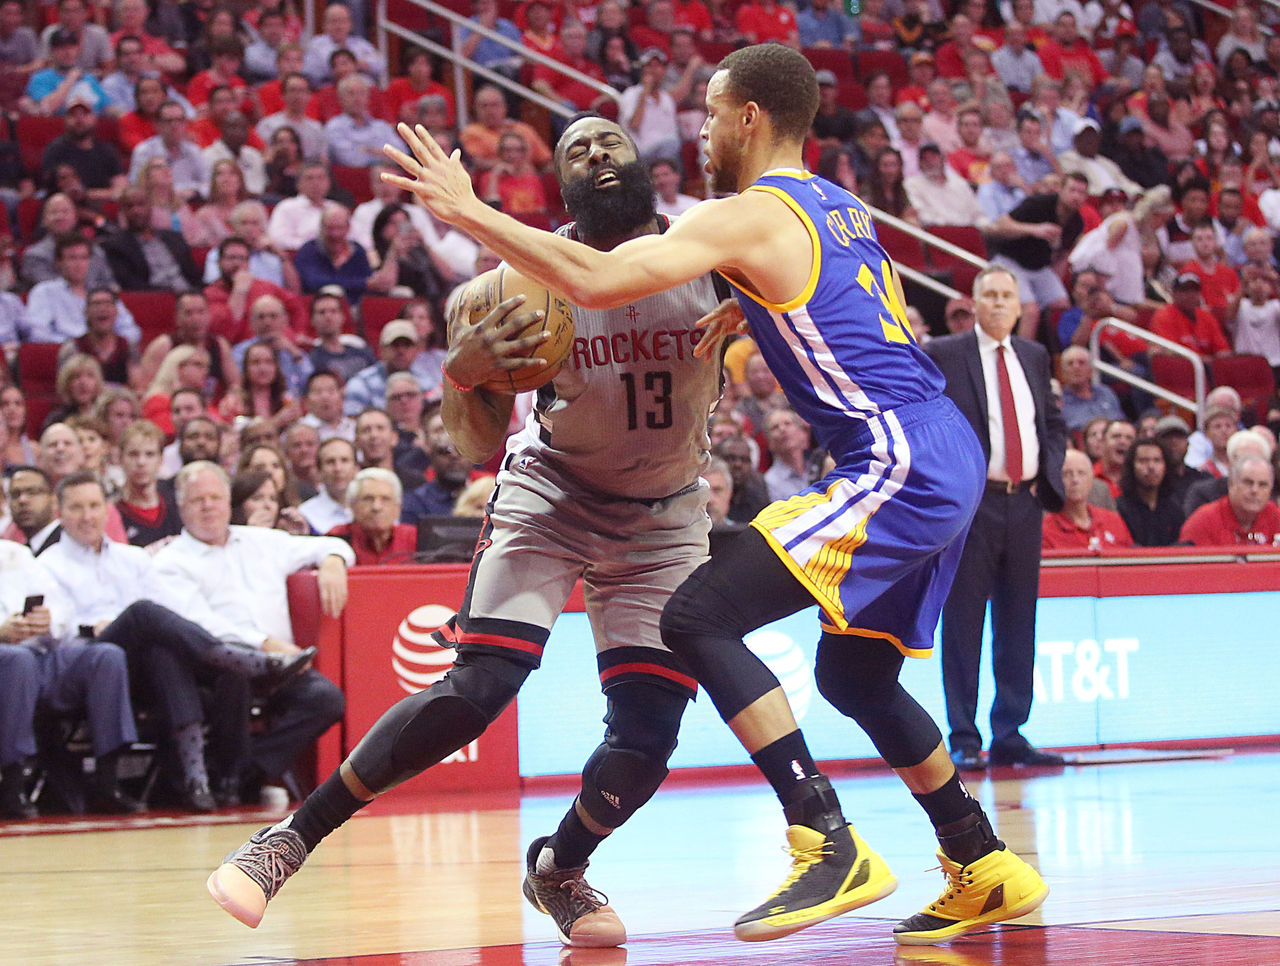 Cropped 2017 03 29t012245z 173991120 nocid rtrmadp 3 nba golden state warriors at houston rockets